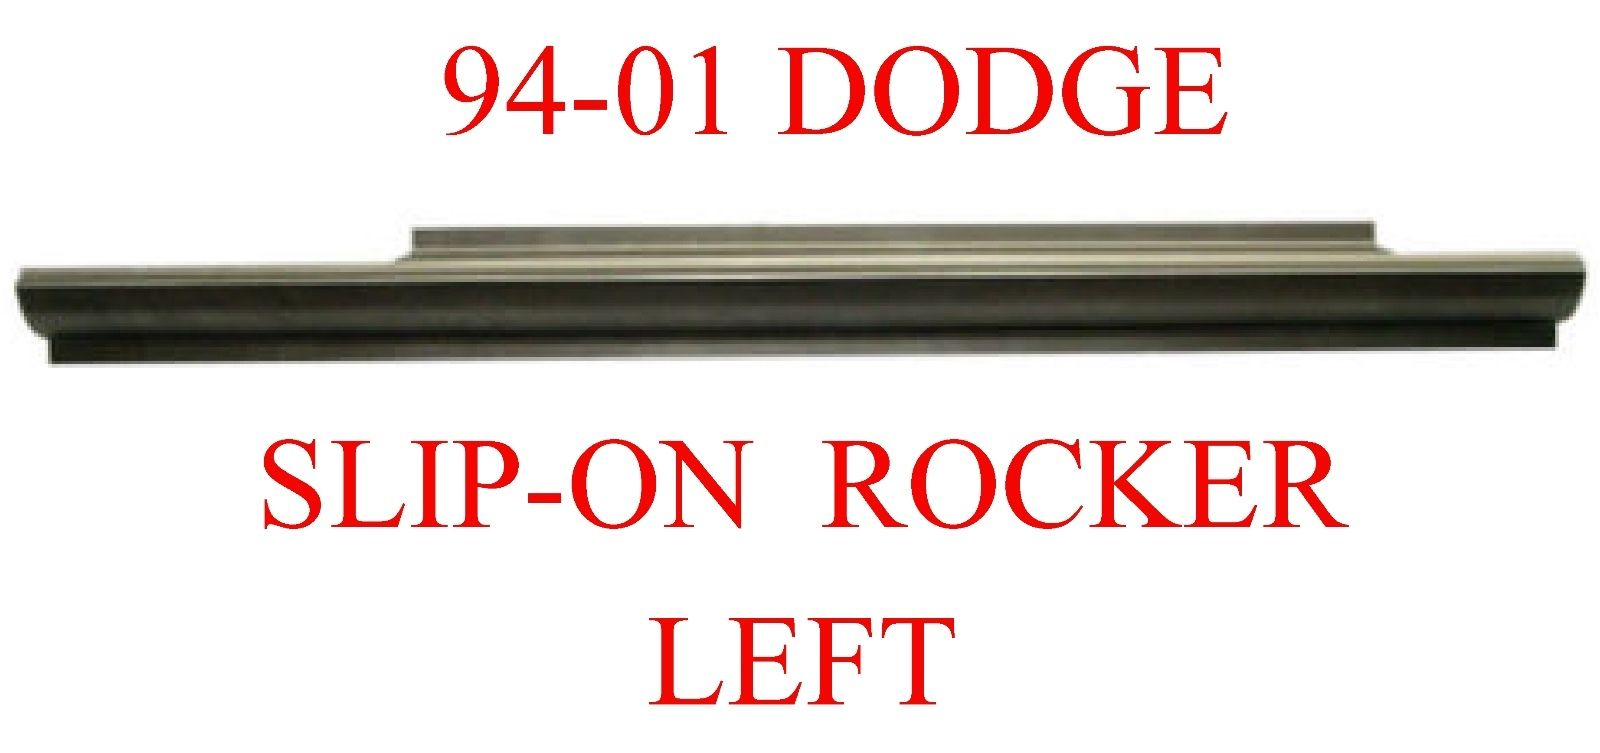 94-01 Dodge Ram Left Slip-On Rocker Panel